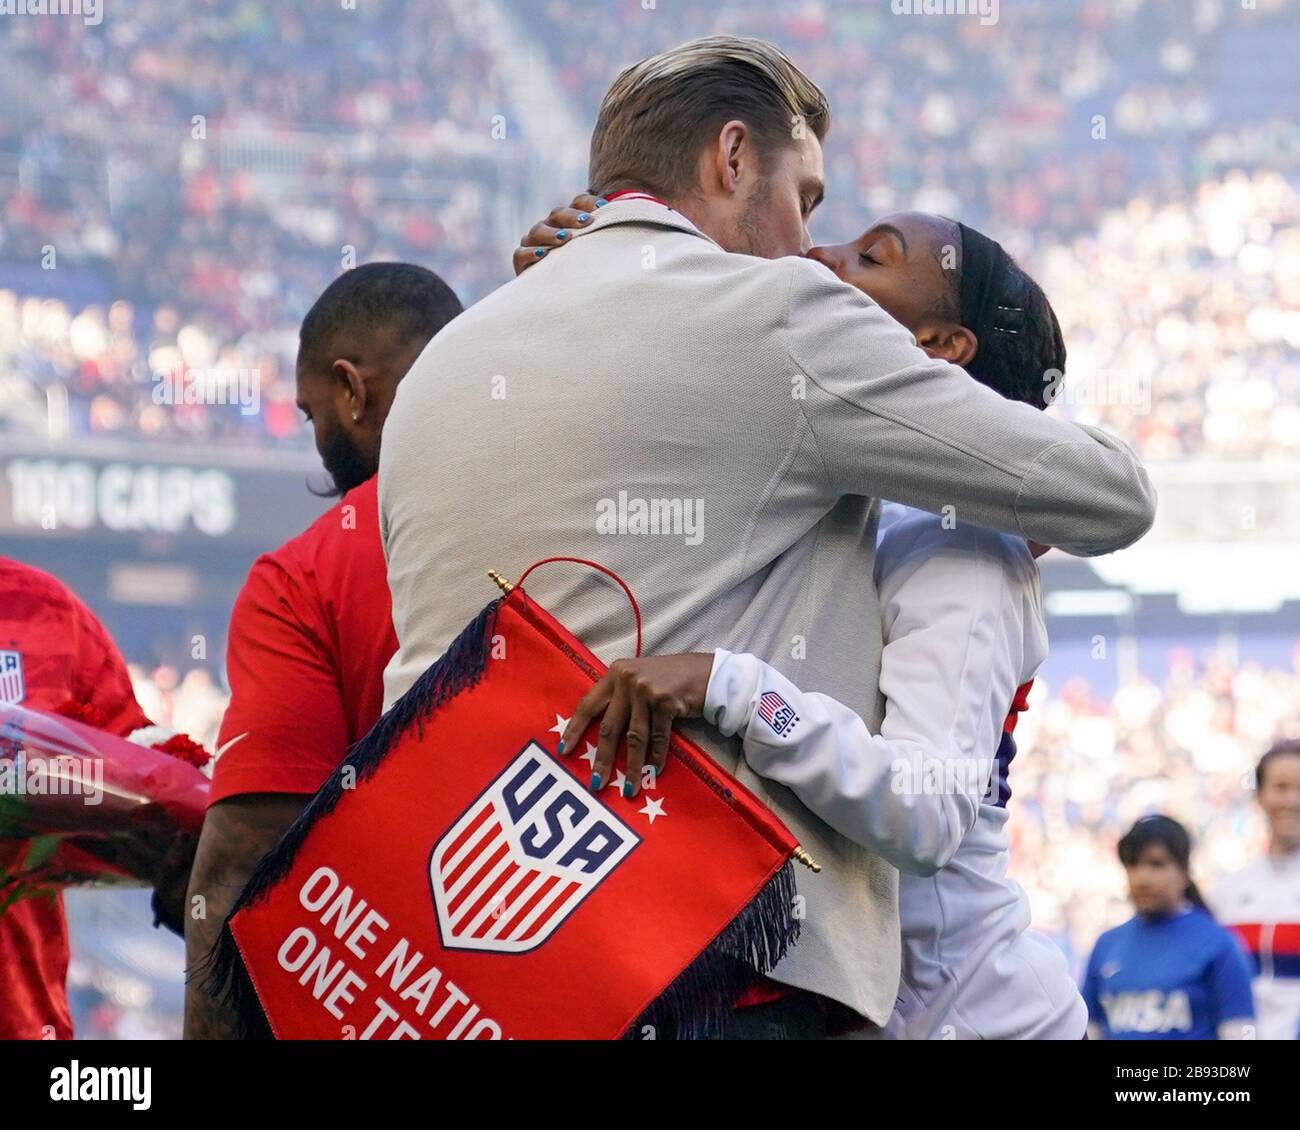 HARRISON. USA. MAR 08:  Family members of Crystal Dunn of the USA (here her husband Pierre Soubrier) celebrate her 100th cap ceremony during the 2020 SheBelieves Cup Women's International friendly football match between USA Women vs Spain Women at Red Bull Arena in Harrison, NJ, USA. ***No commericial use*** (Photo by Daniela Porcelli/SPP) Stock Photo